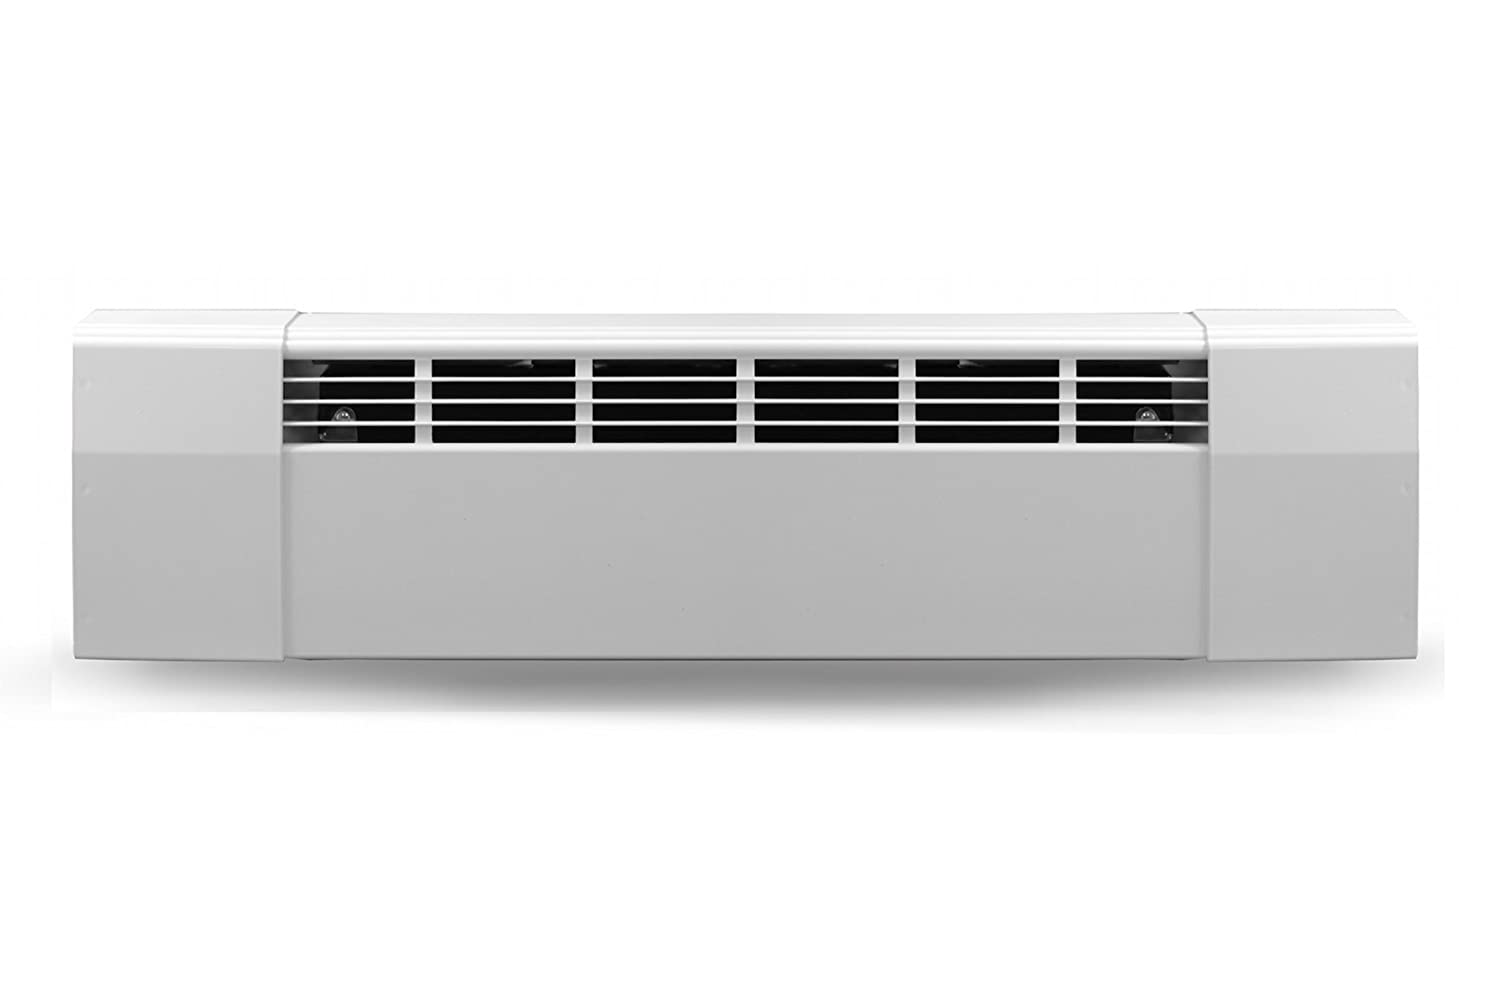 Slant Fin Revital/Line Aluminum Baseboard Heater Cover Complete Replacement Kit with 2 End Caps - Available in Sizes 2-6 Feet - Maximum Heat Output, Brite White